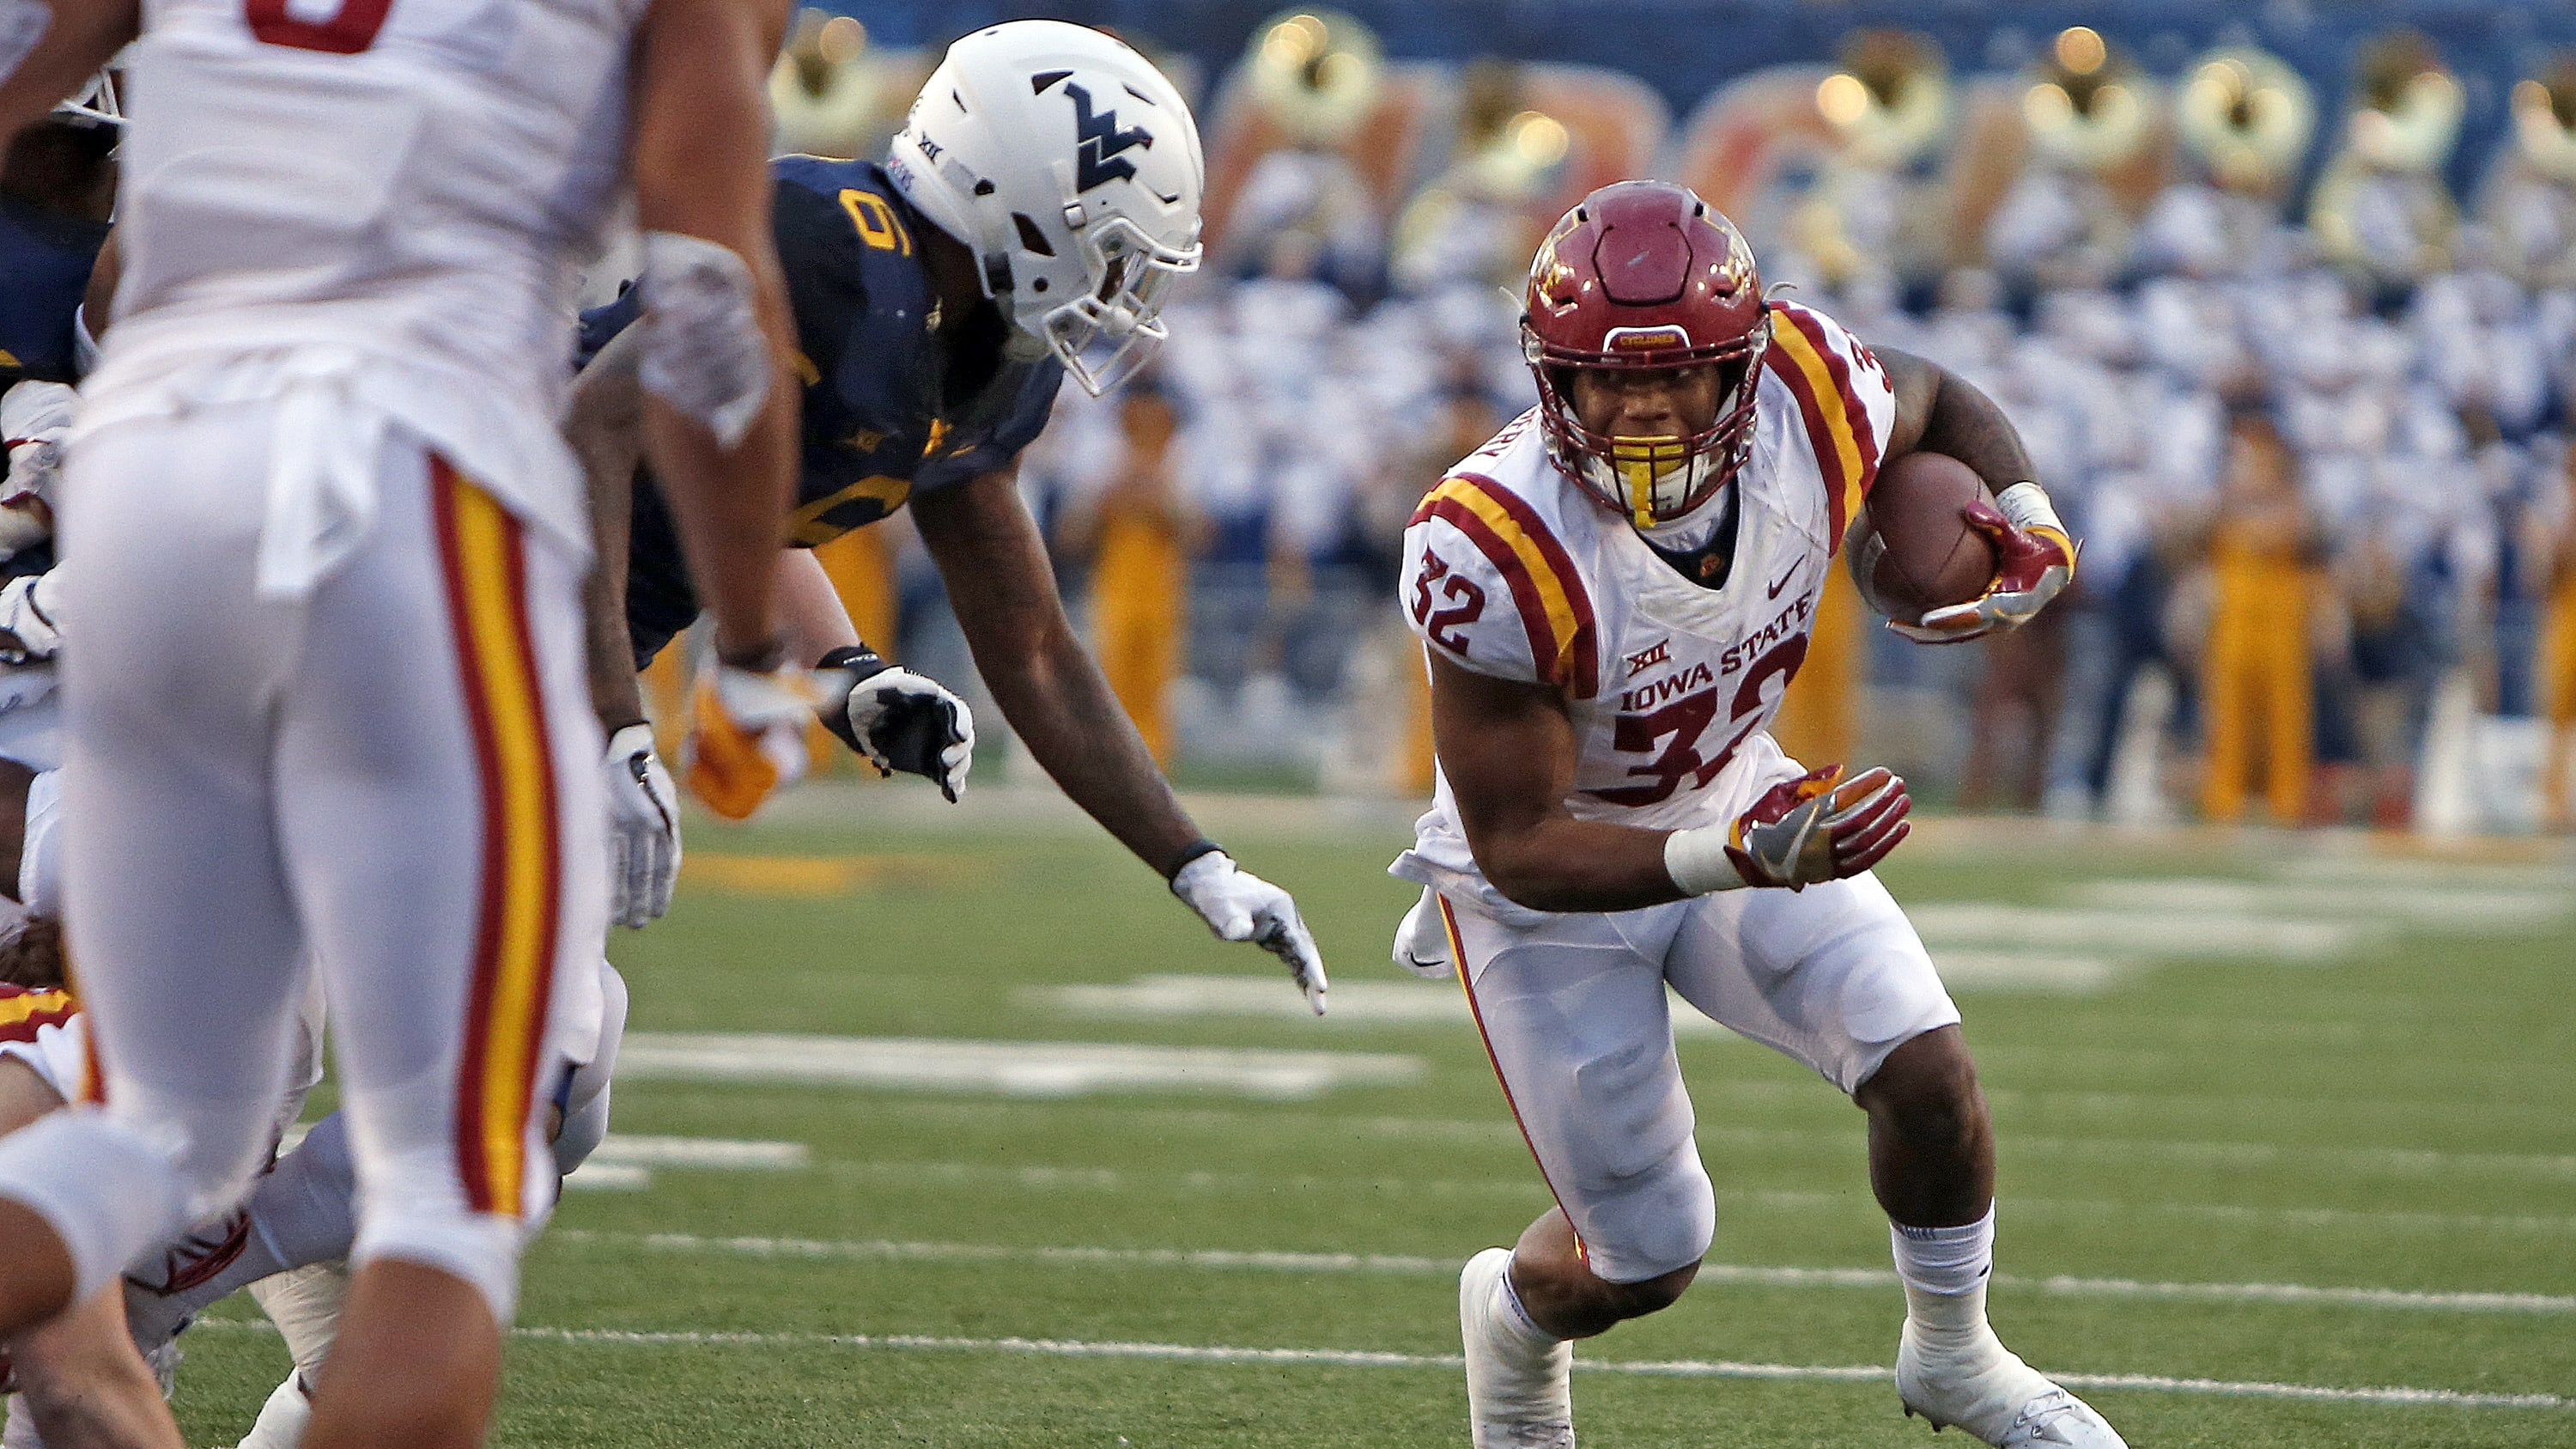 MORGANTOWN, WV - NOVEMBER 04: David Montgomery #32 of the Iowa State Cyclones rushes against the West Virginia Mountaineers at Mountaineer Field on November 04, 2017 in Morgantown, West Virginia. (Photo by Justin K. Aller/Getty Images)